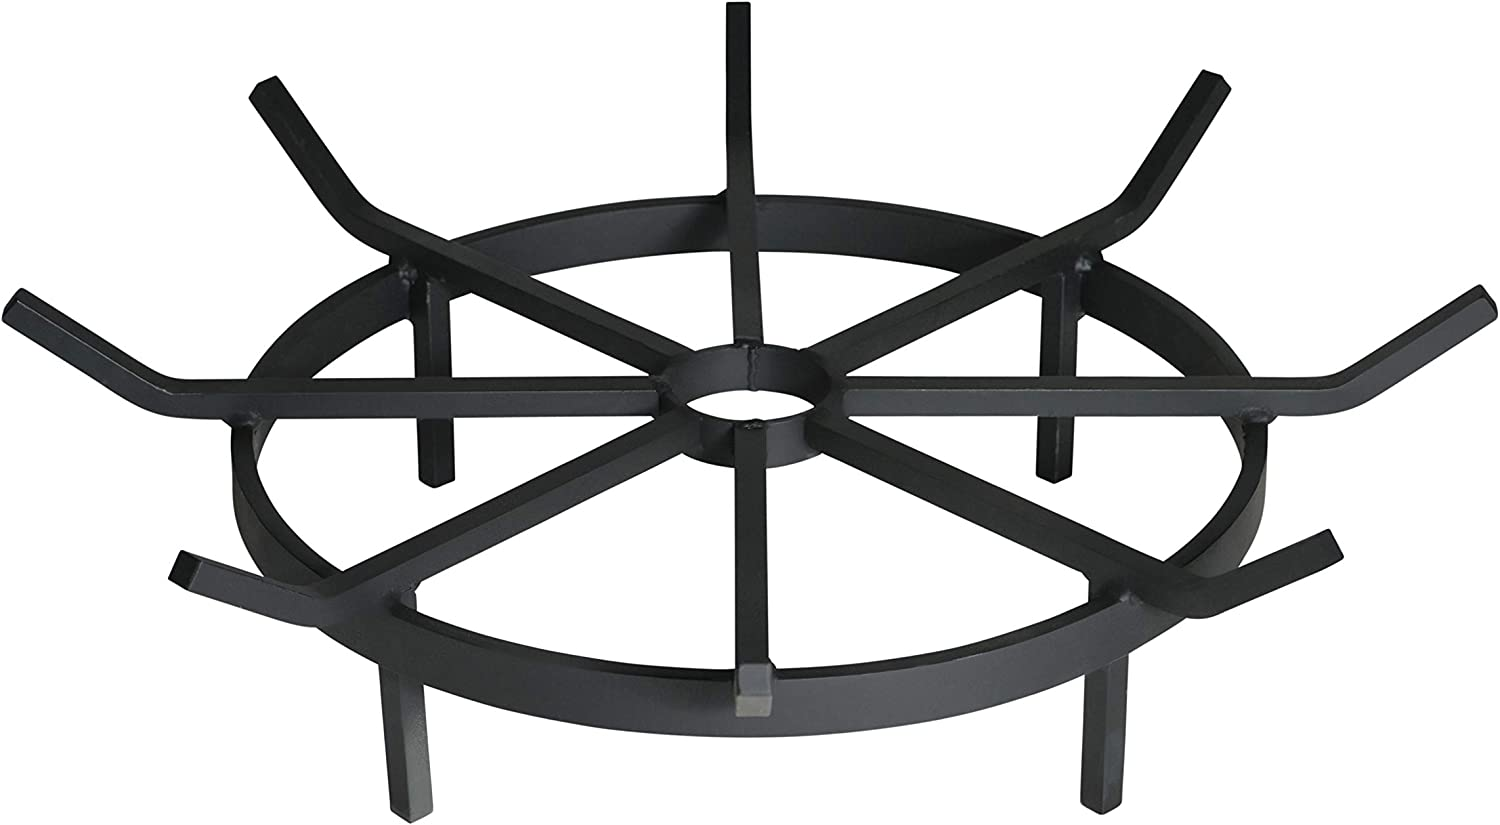 SteelFreak Wagon Wheel Firewood Grate for Fire Pit – Made in the USA 24 Inch